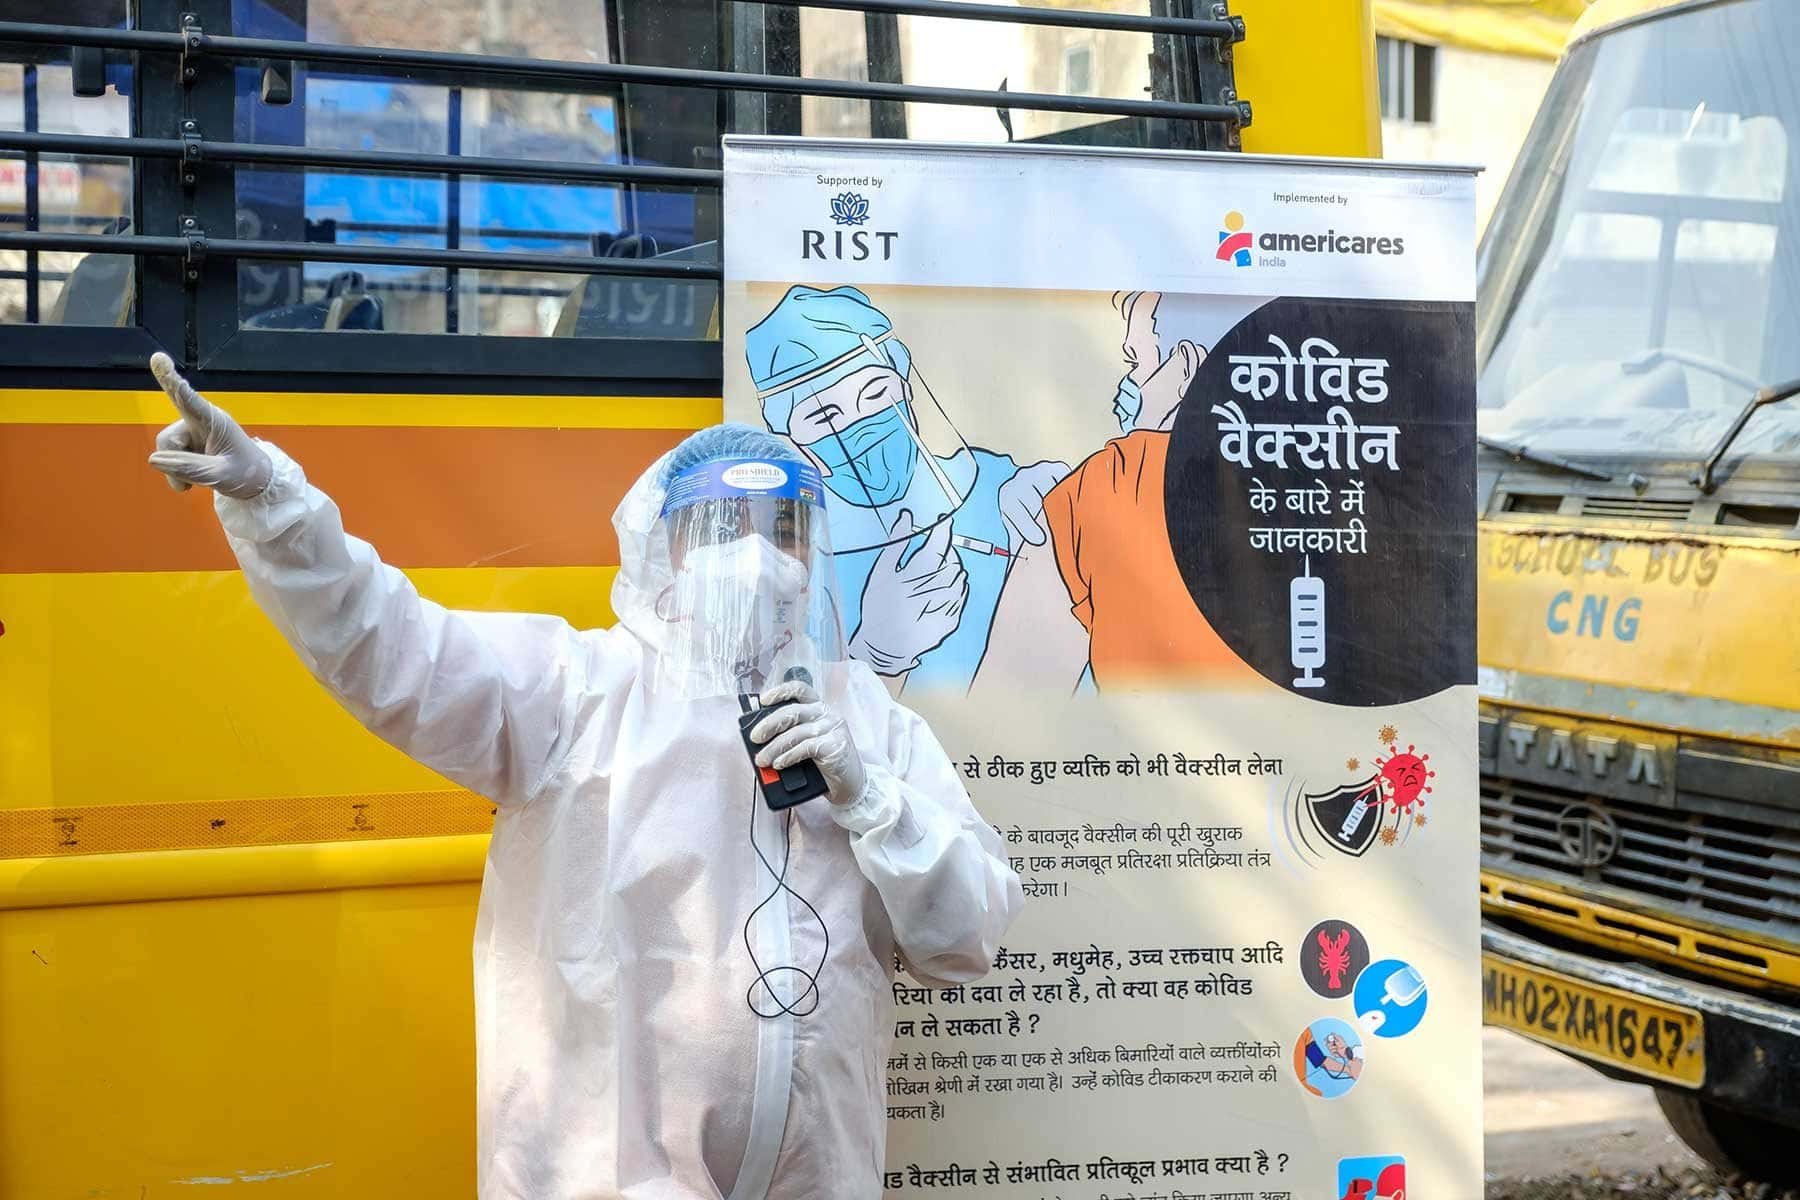 An Americares India staff member educates community members in Mumbai about the importance of COVID-19 vaccination in March. Photo courtesy of Americares India